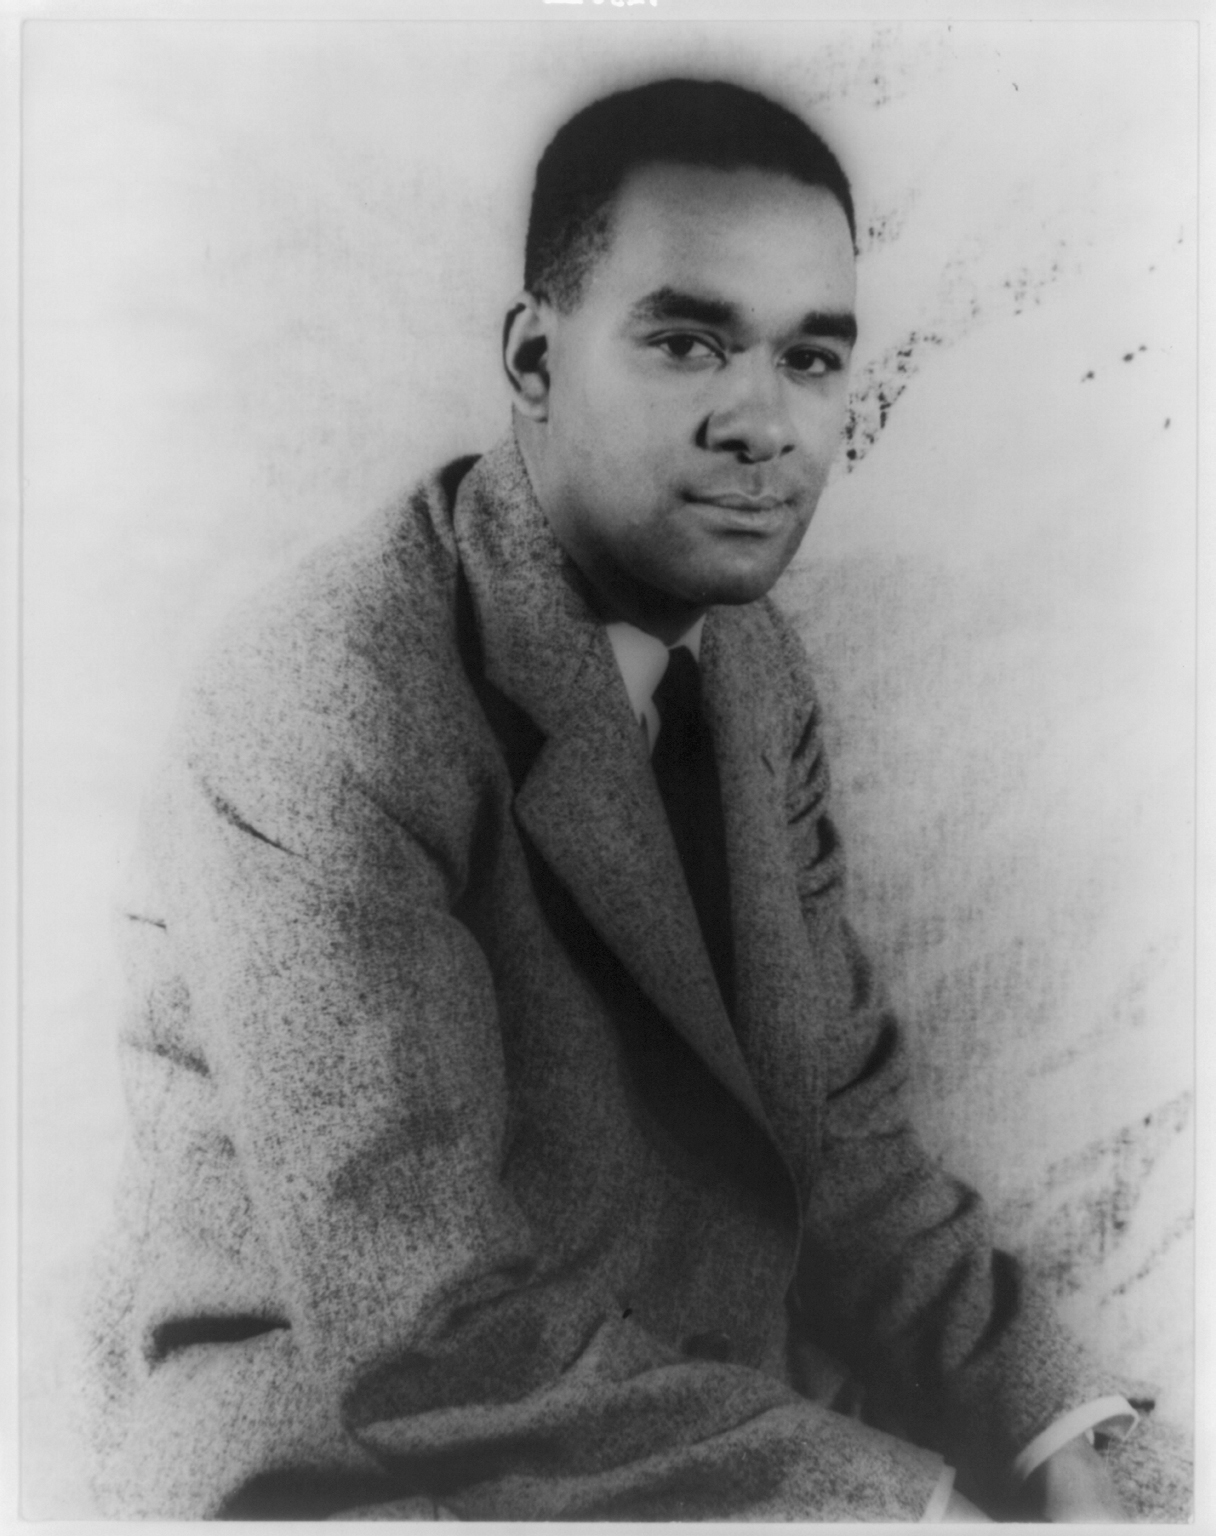 an analysis of native son by richard wright Set in the north and the south during the 1930s and 1940s, native son and   neuroses, the paper also refers to wright's autobiography black boy (1945) in.